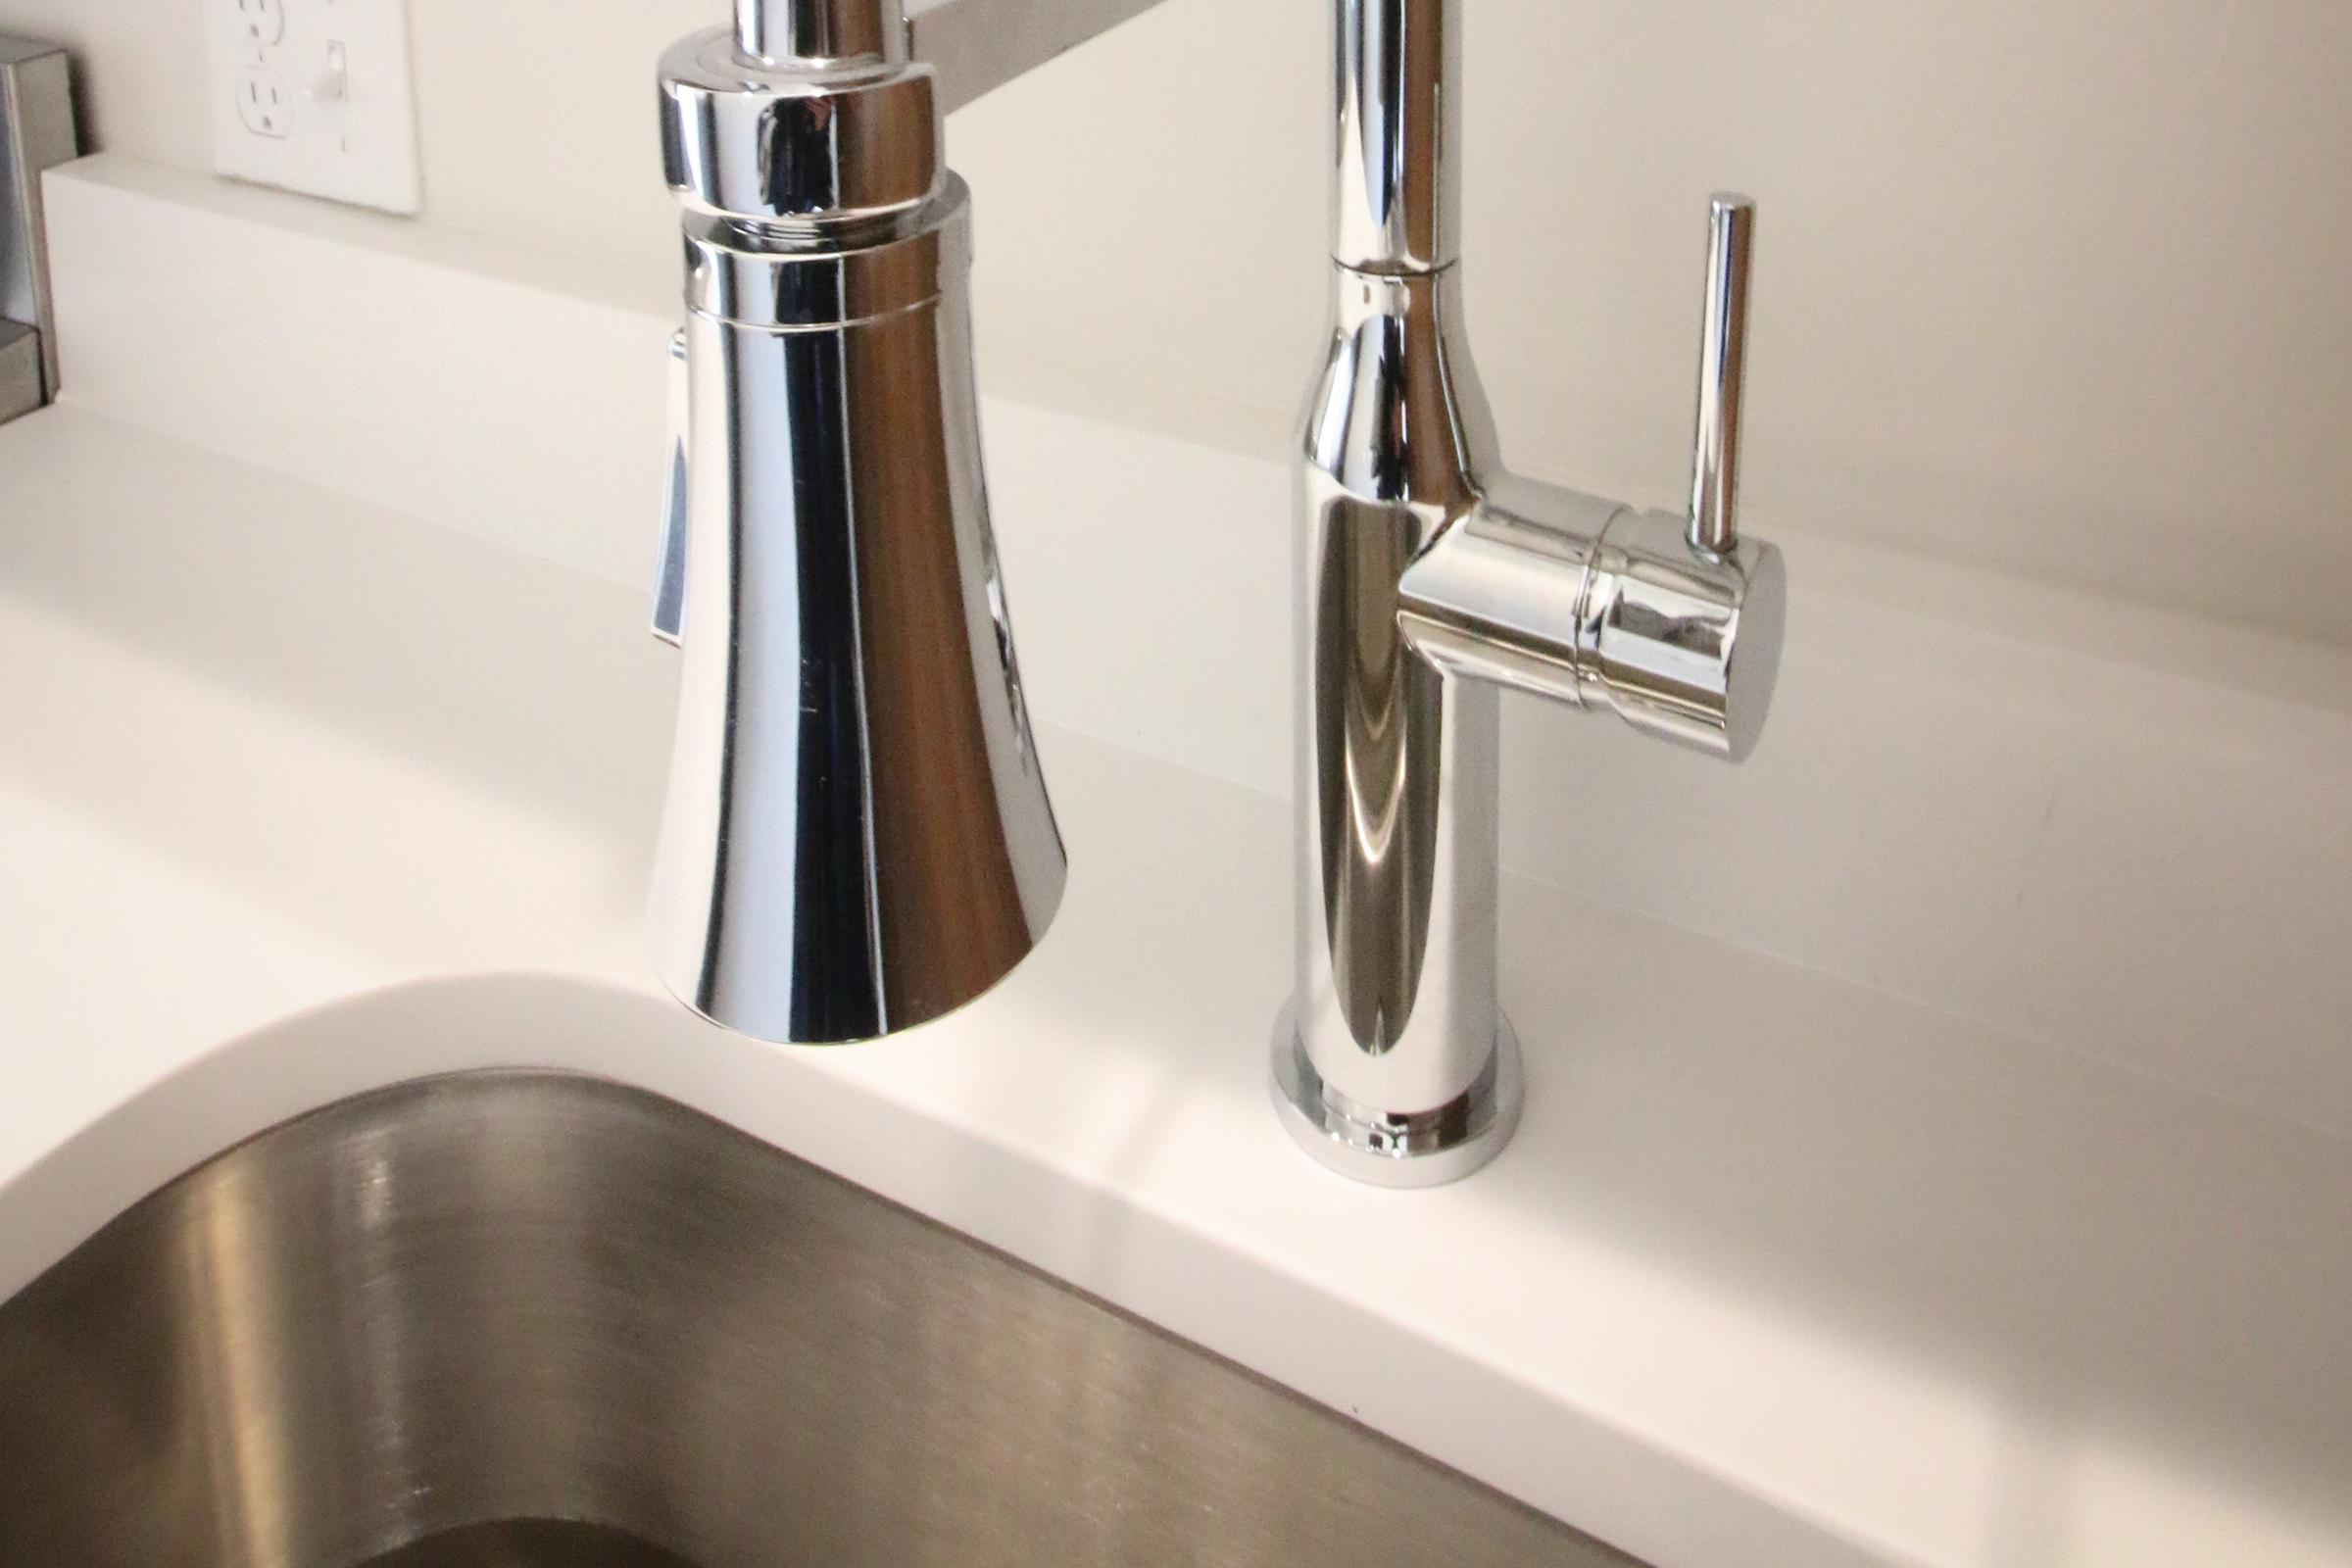 a stainless steel sink